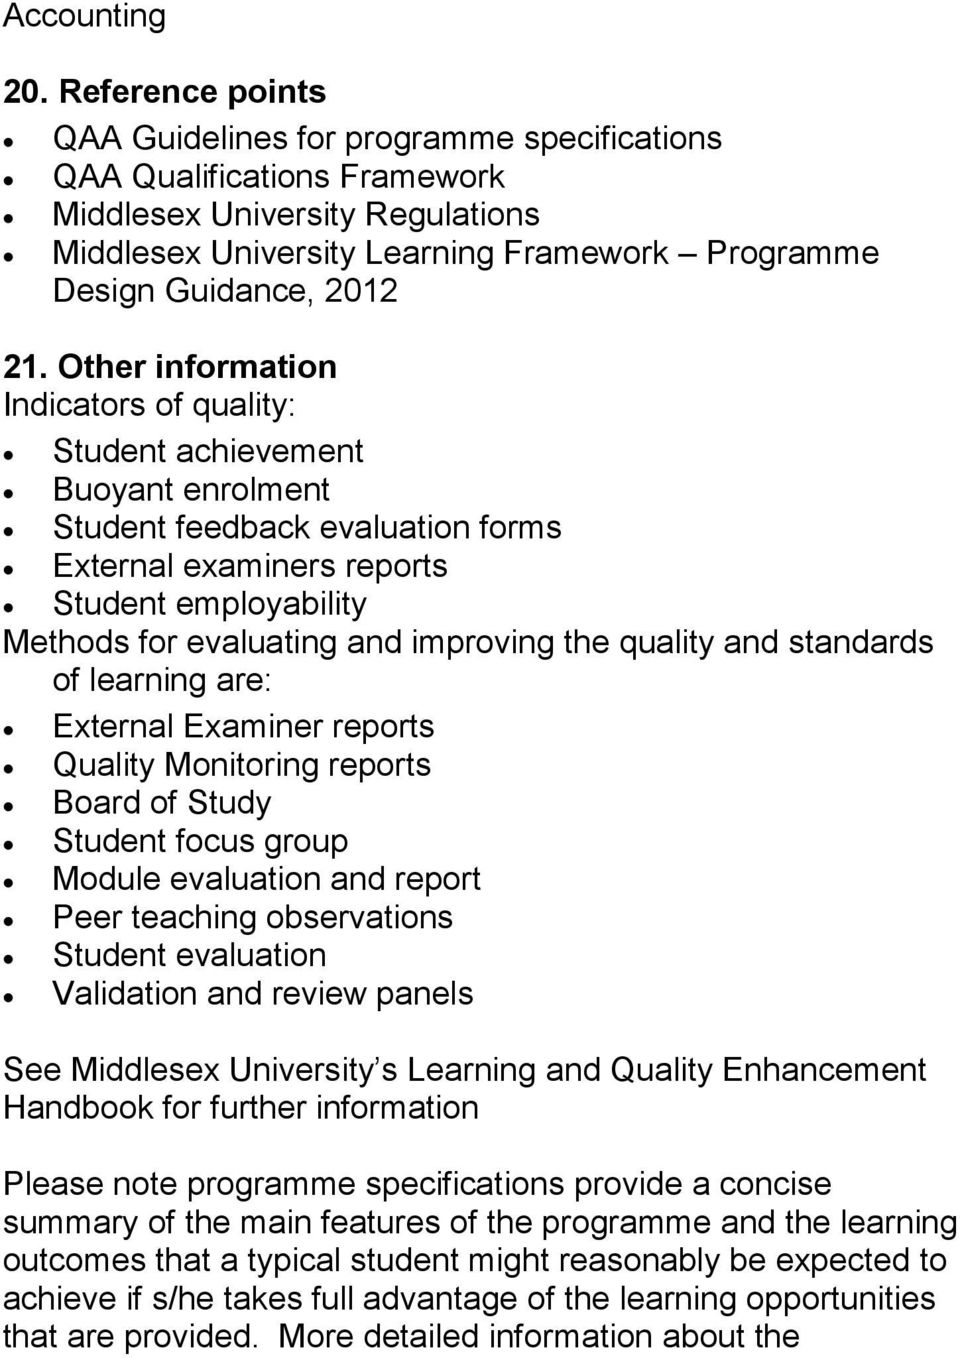 Other information Indicators of quality: Student achievement Buoyant enrolment Student feedback evaluation forms xternal examiners reports Student employability Methods for evaluating and improving